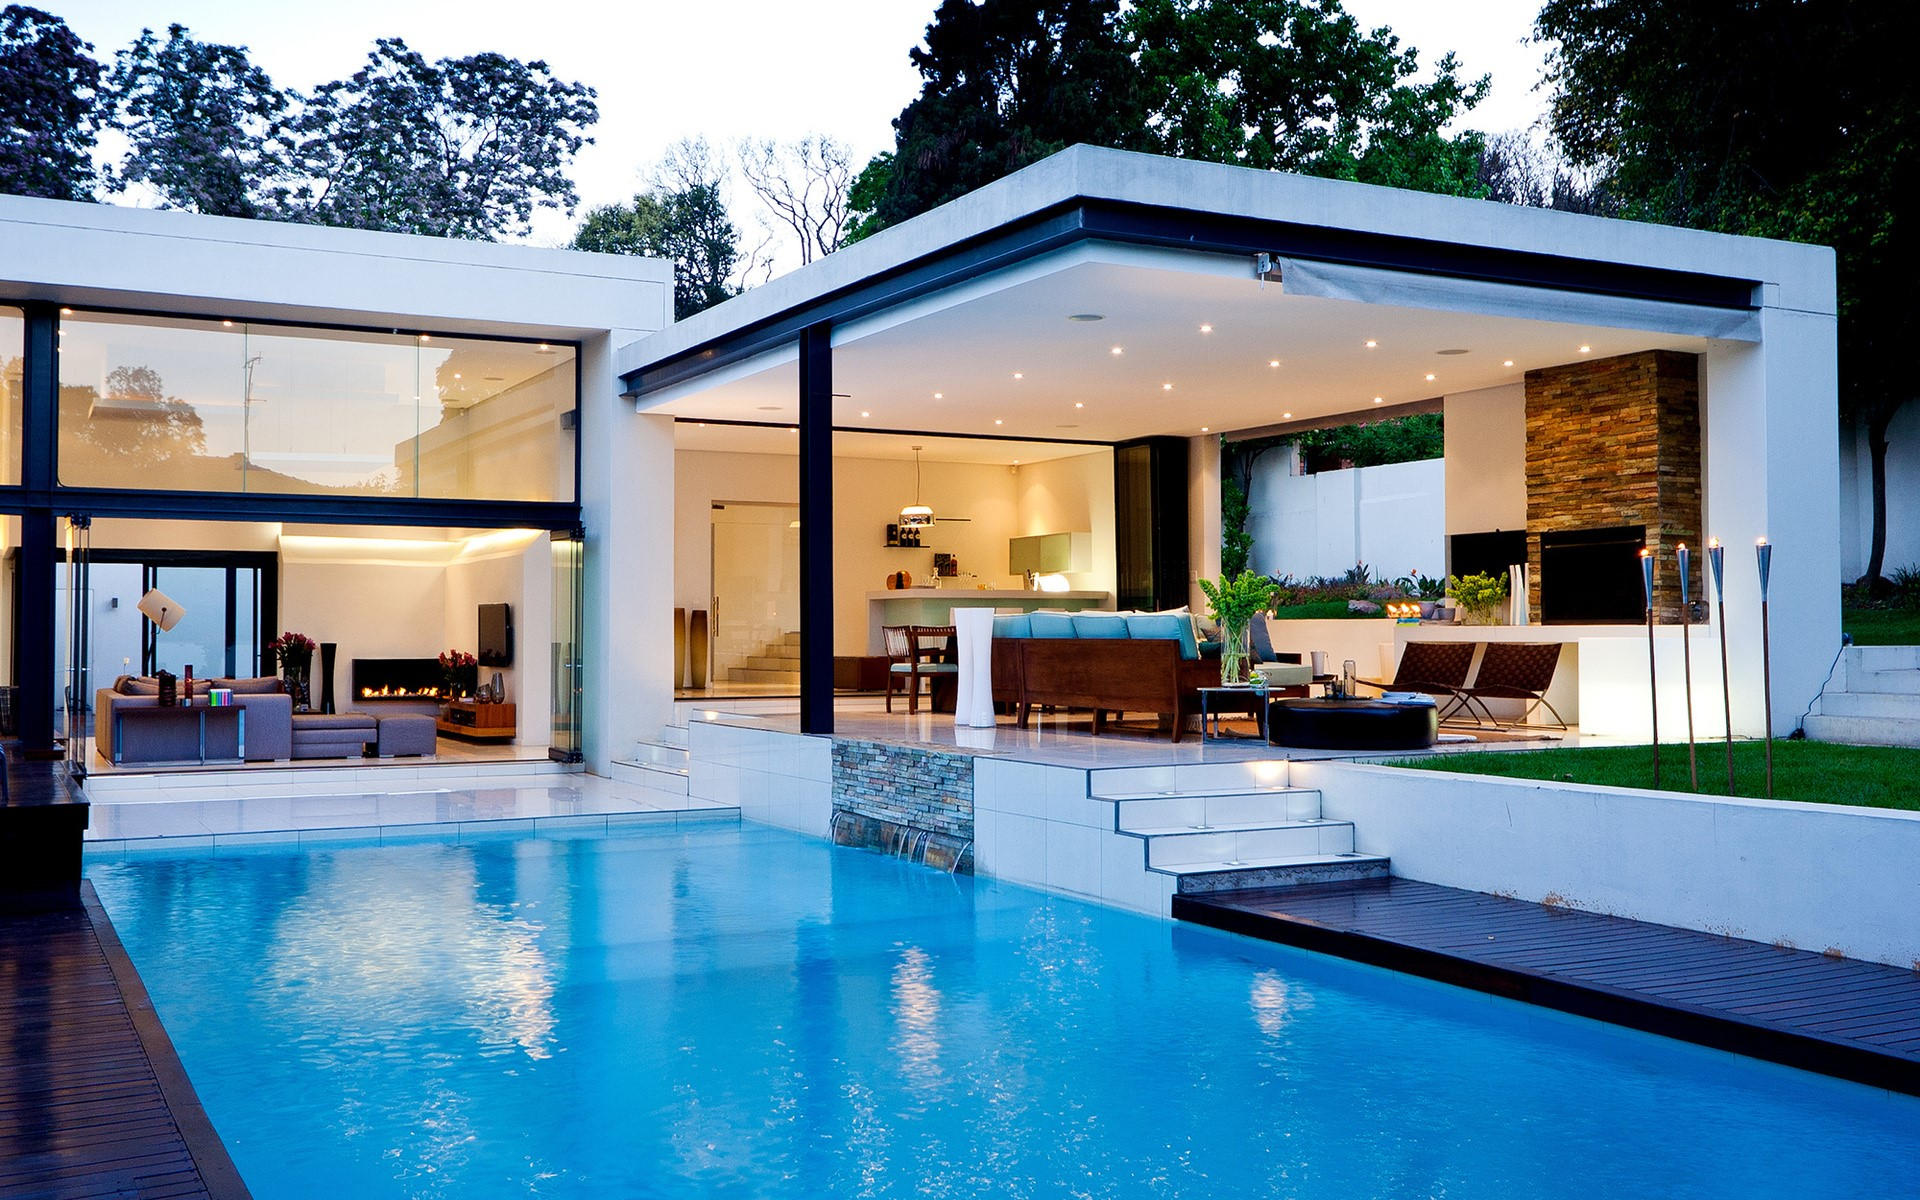 Beautiful Luxury House with Swiming Pool Wallpapers for Desktop 1920x1200